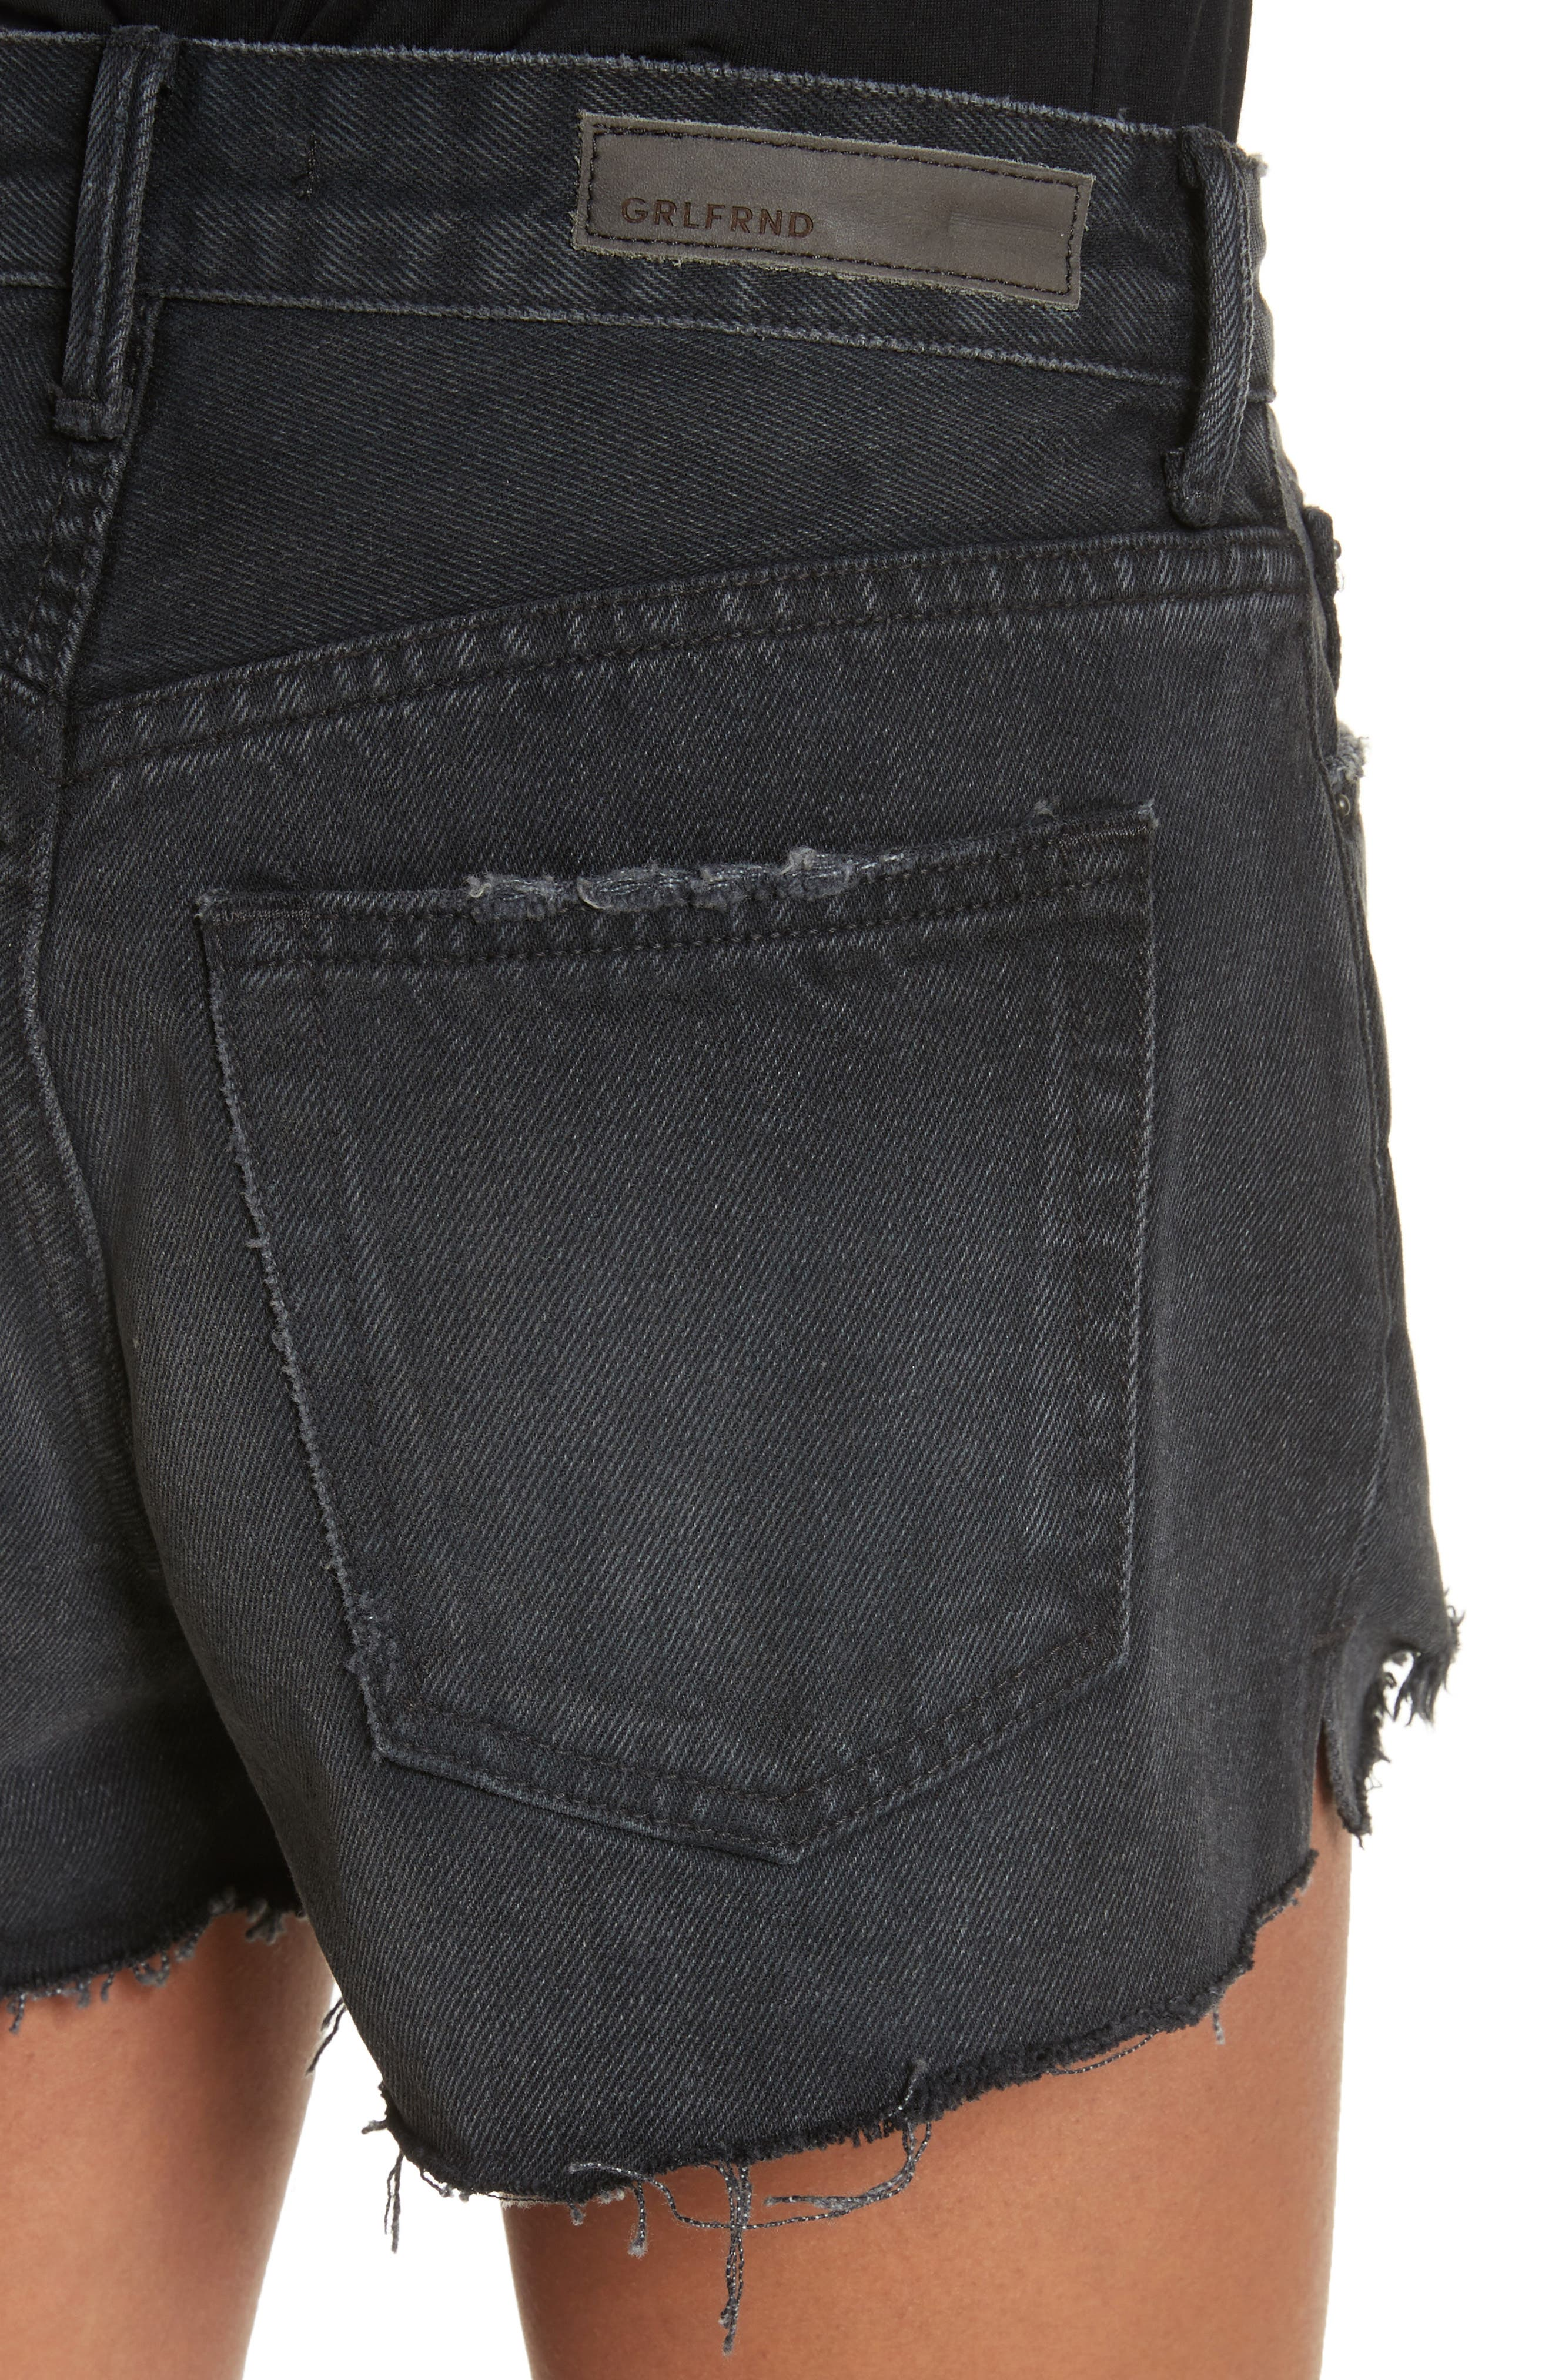 Cindy Rigid High Waist Denim Shorts,                             Alternate thumbnail 4, color,                             007